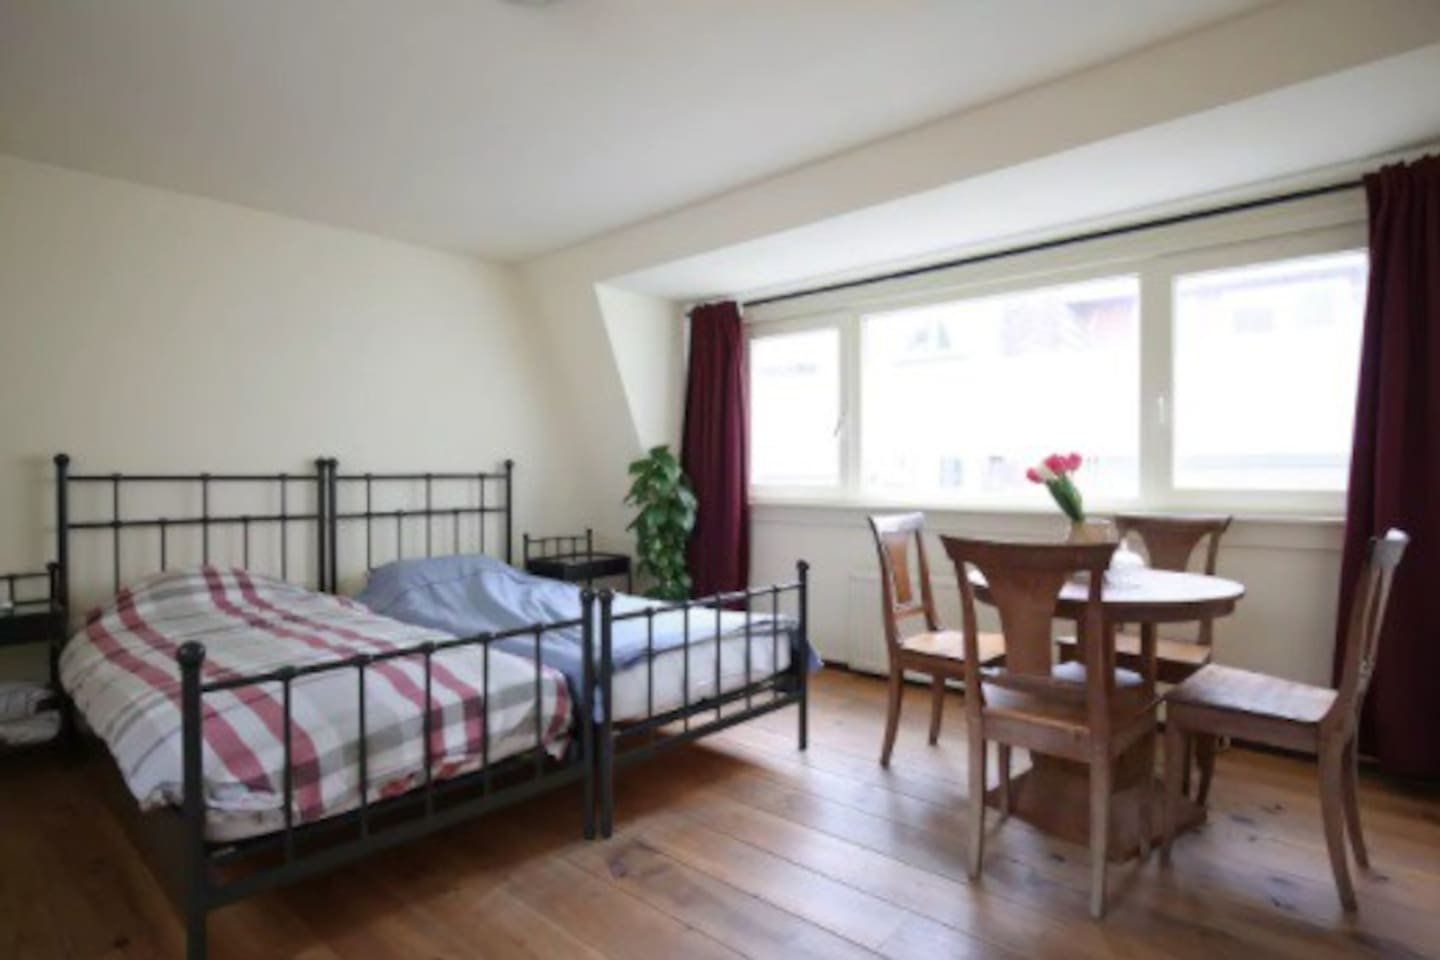 a light bedroom with convenient beds